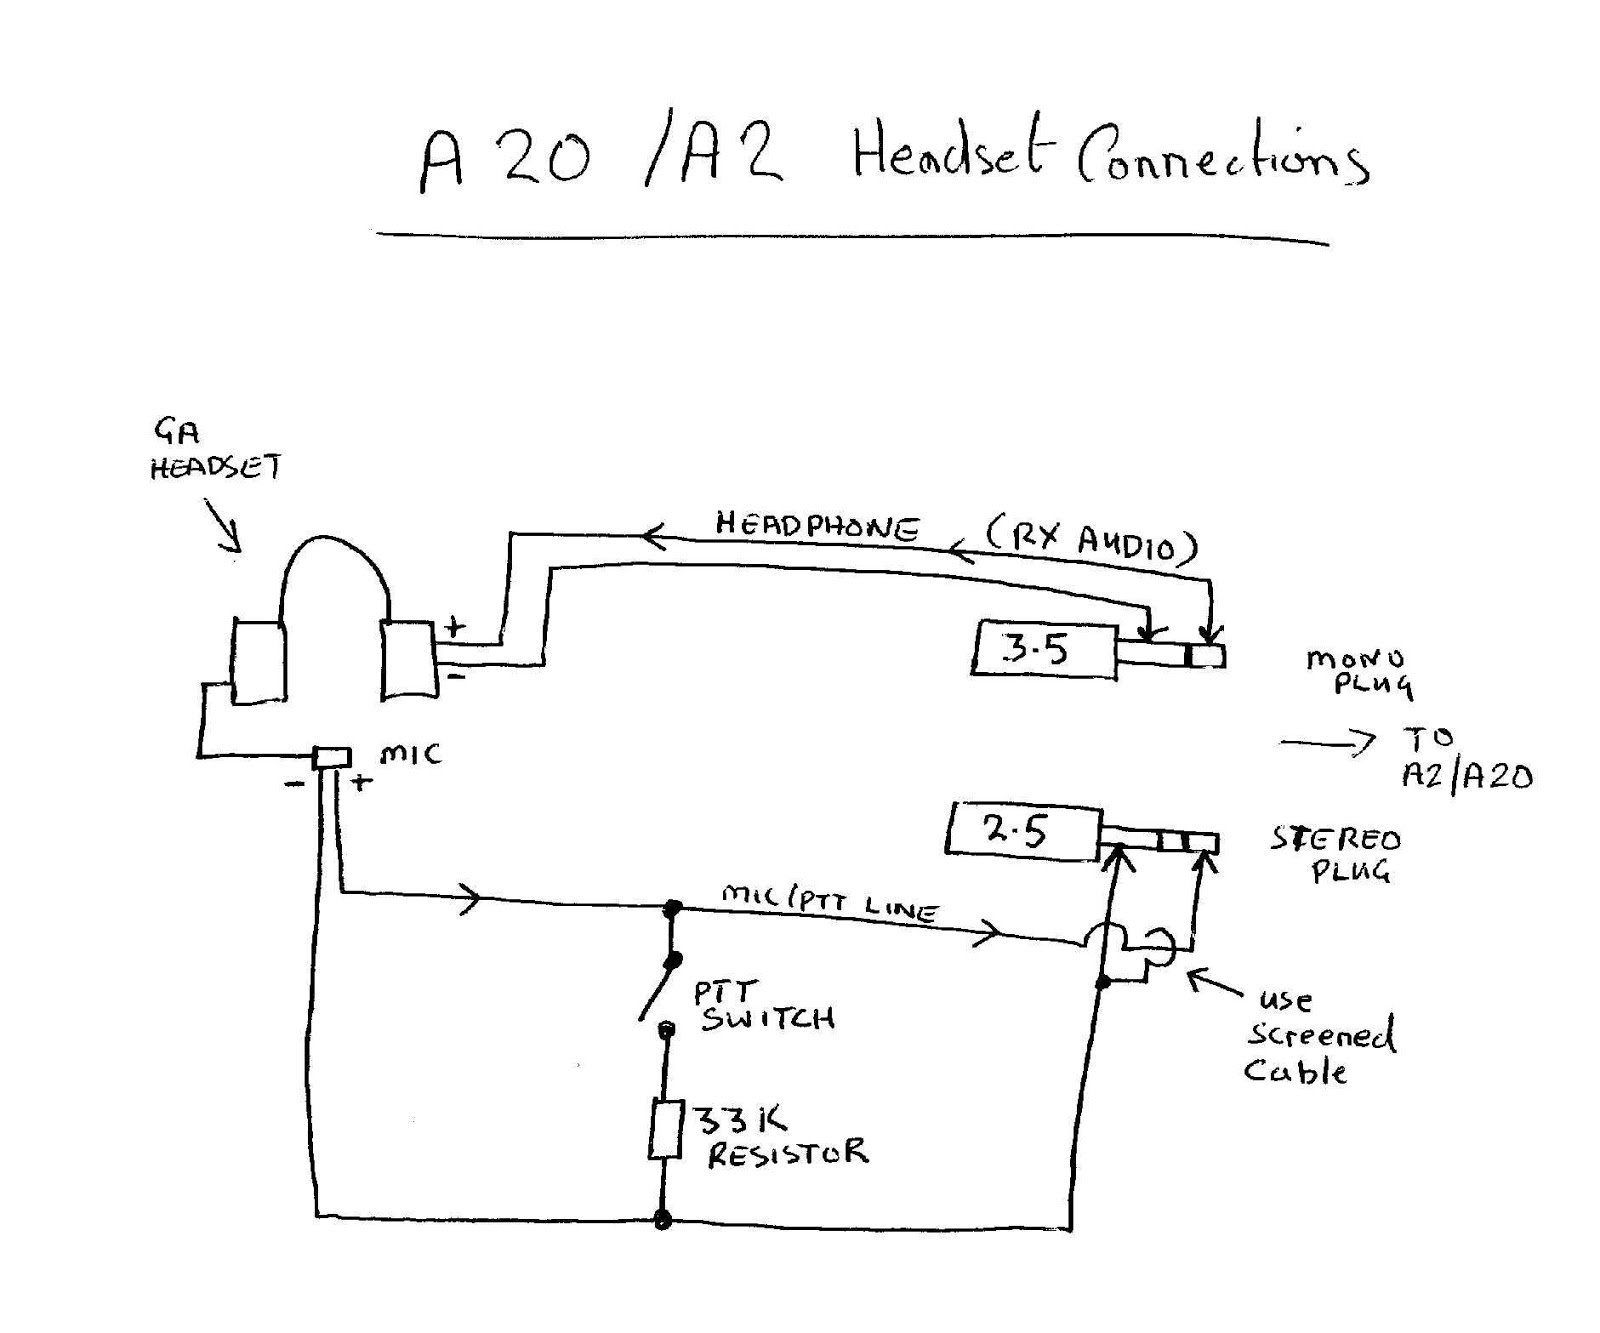 Wiring Diagram Together With 4 Pin Xlr Wiring Diagram Together With - Xlr Connector Wiring Diagram